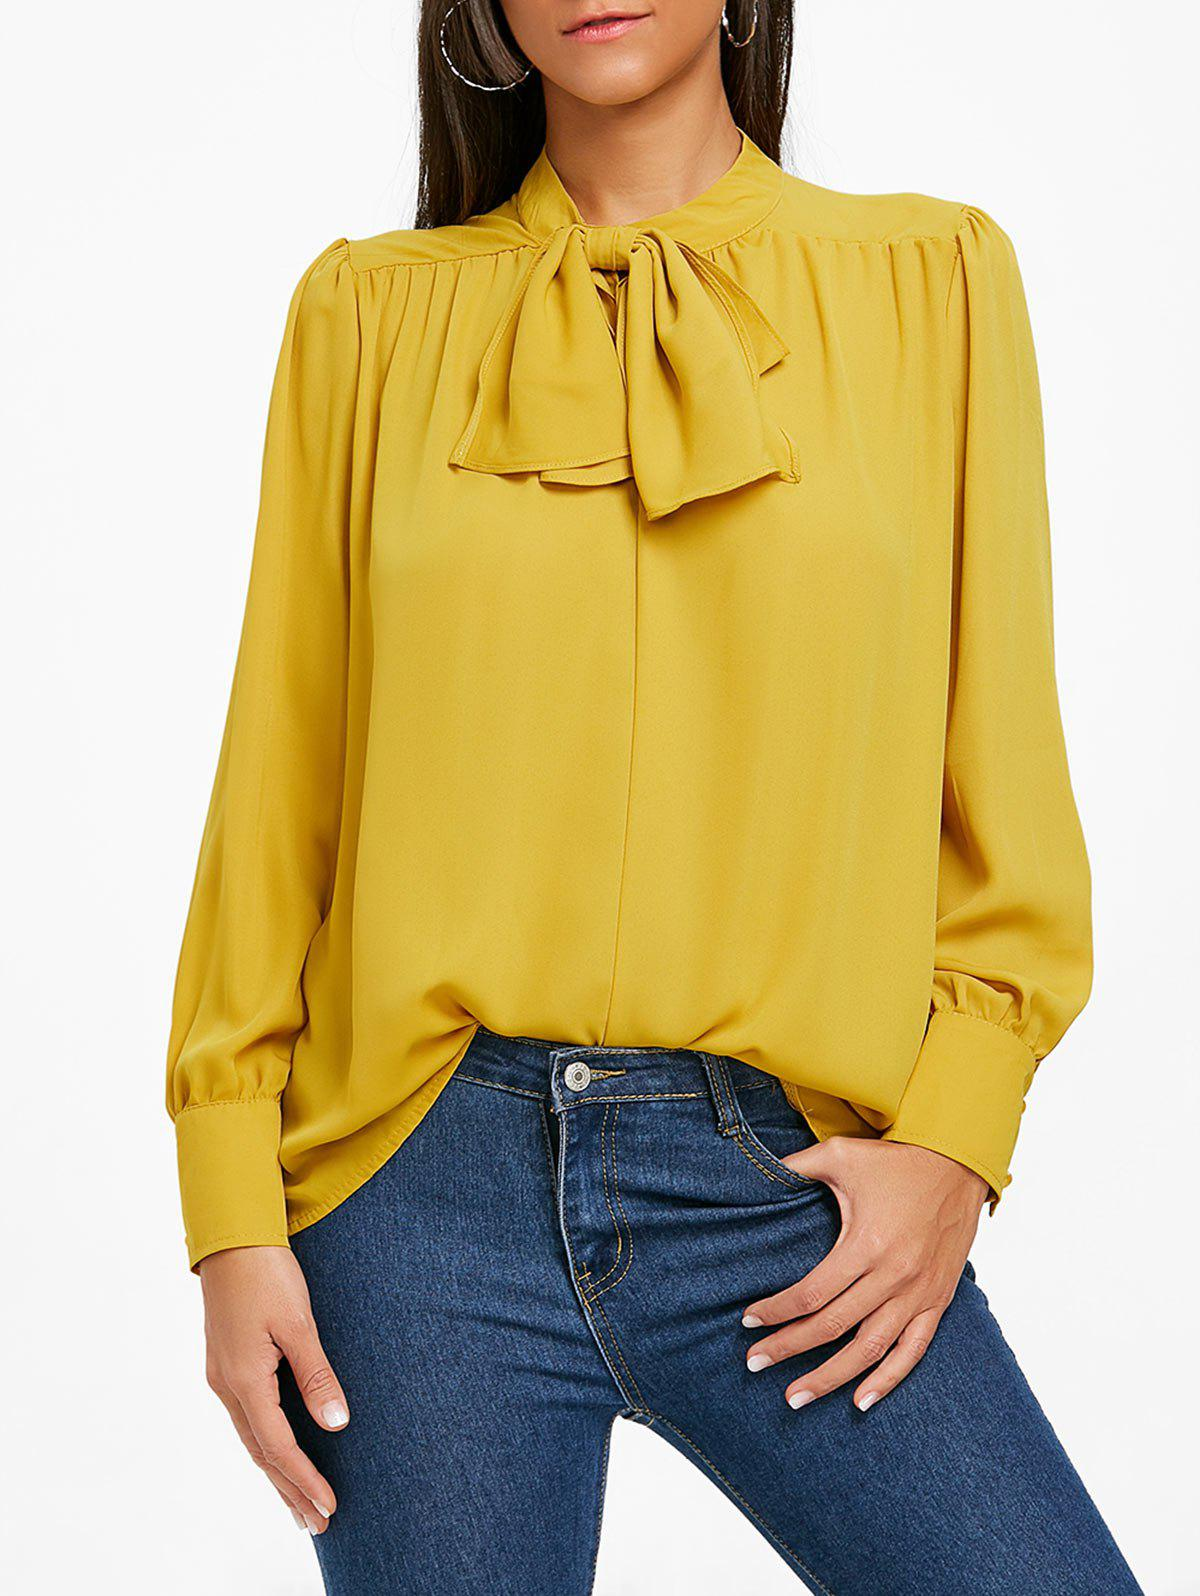 Mock Neck Bowknot Chiffon Blouse - YELLOW XL